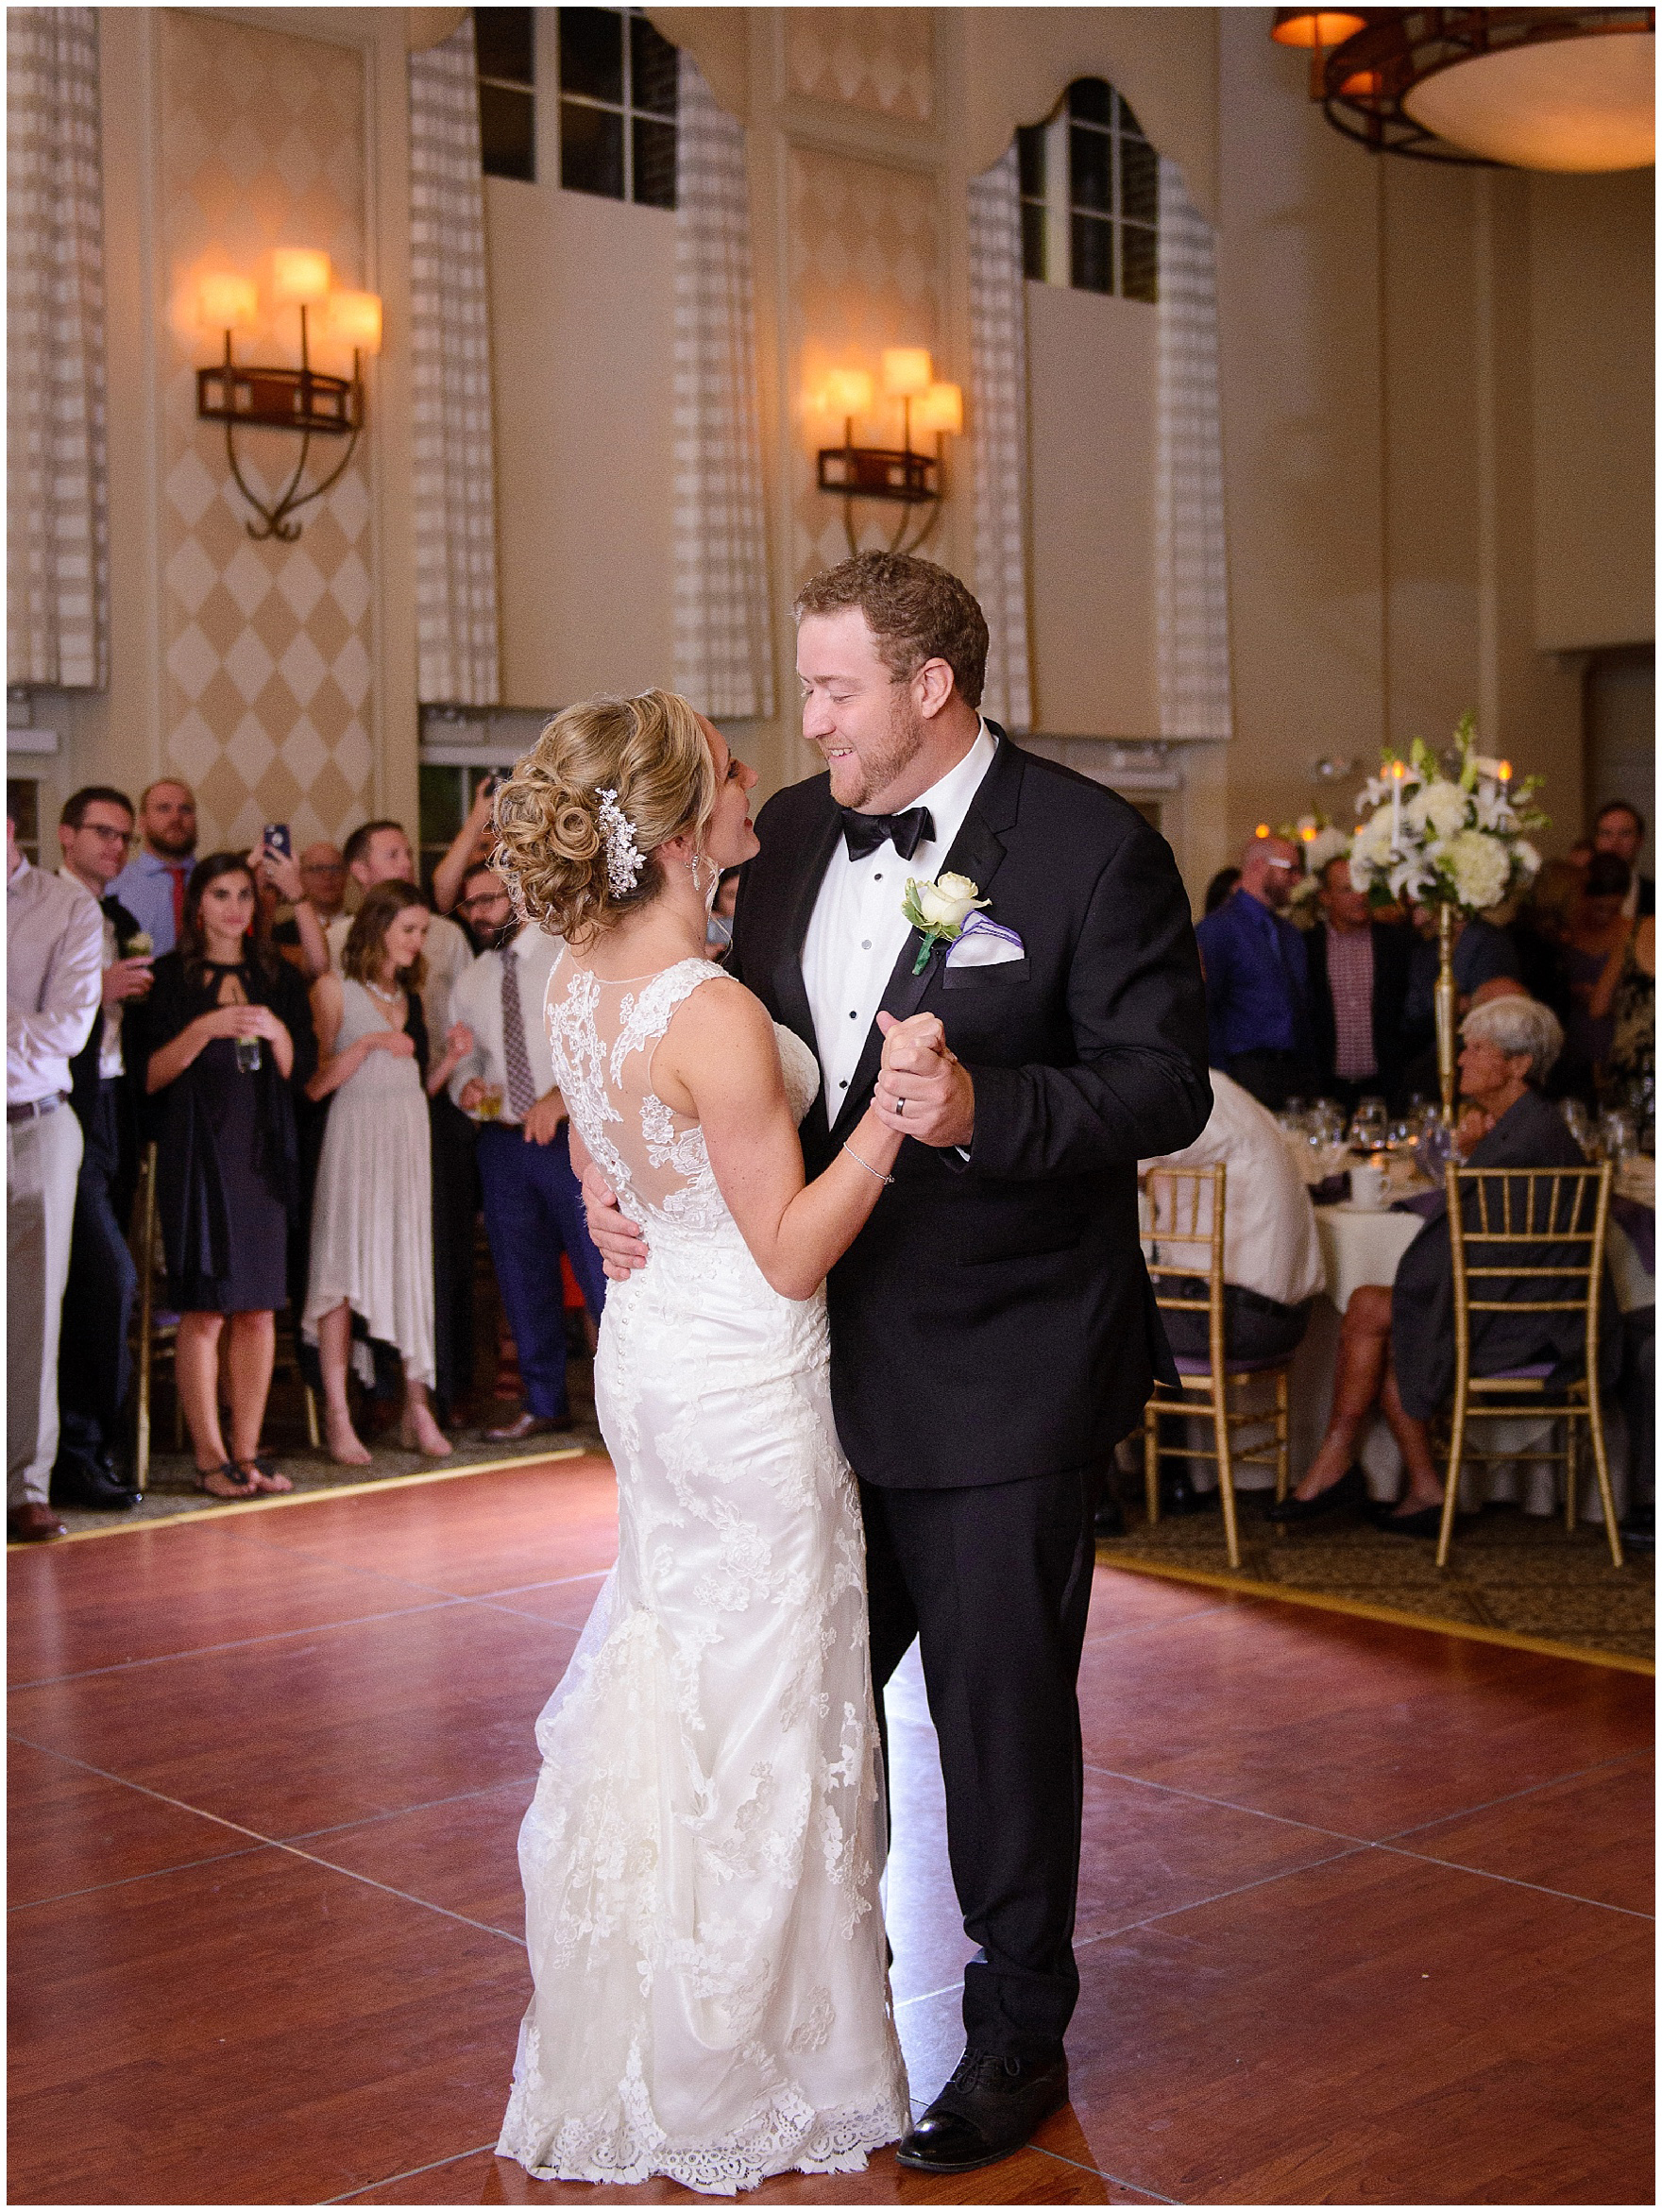 The bride and groom dance during a Glen Club Glenview Illinois wedding.